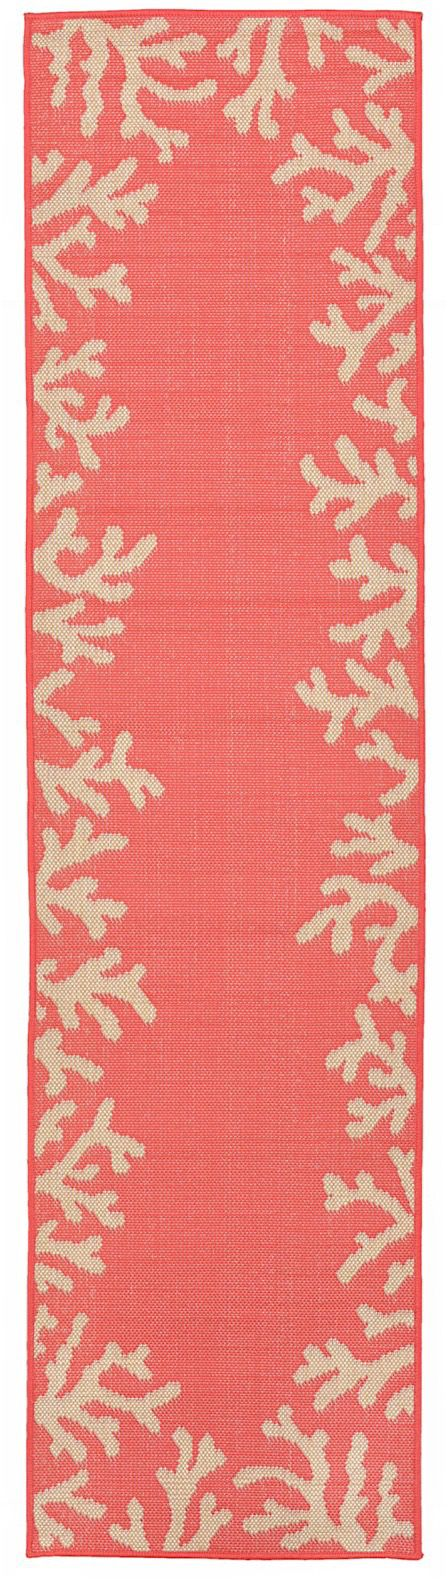 trans ocean terrace contemporary area rug collection